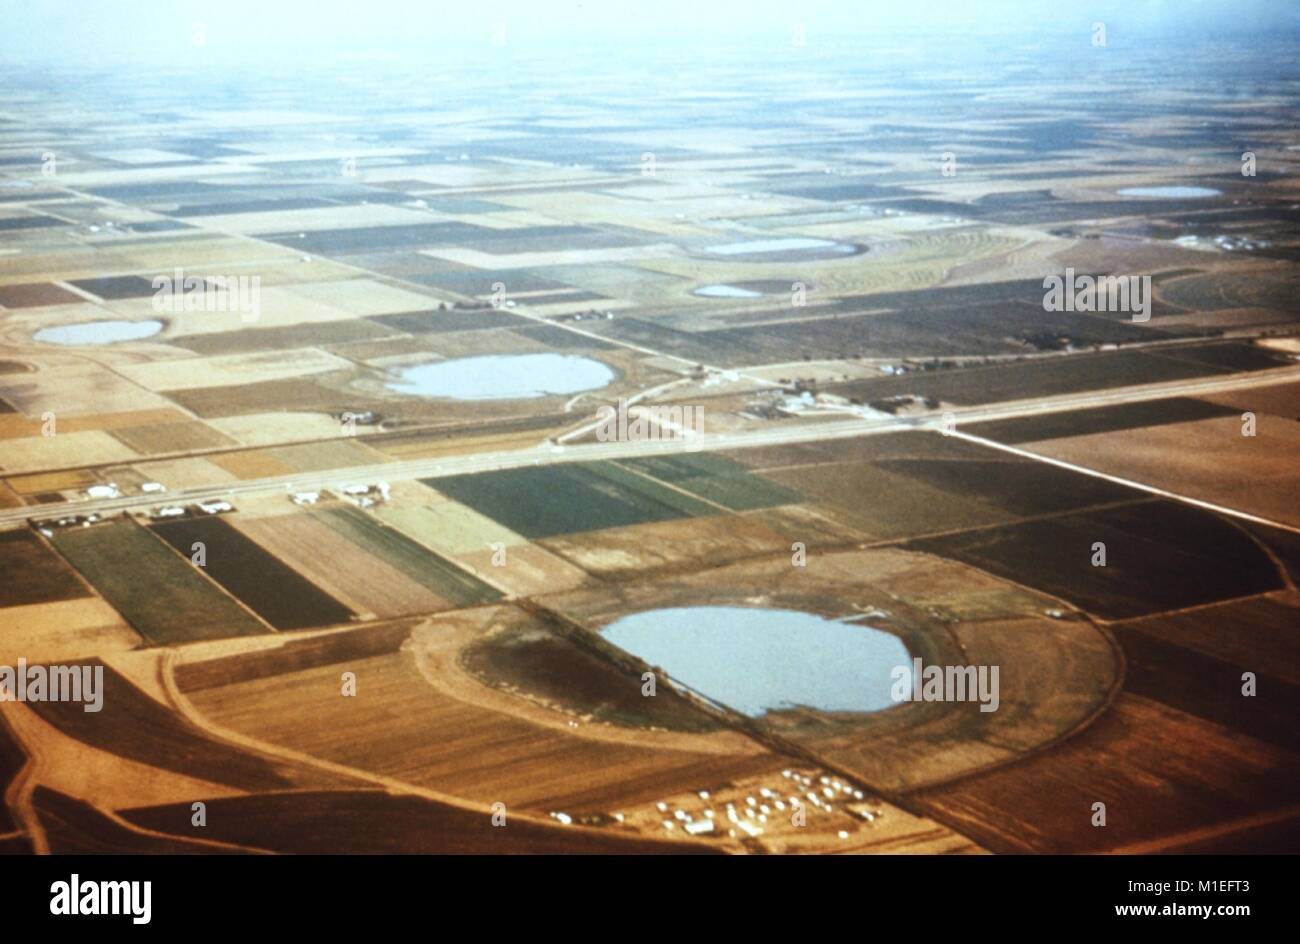 Areal photograph of playa lakes full of stagnant water with fields around them, in Texas, a site relevant to the Stock Photo